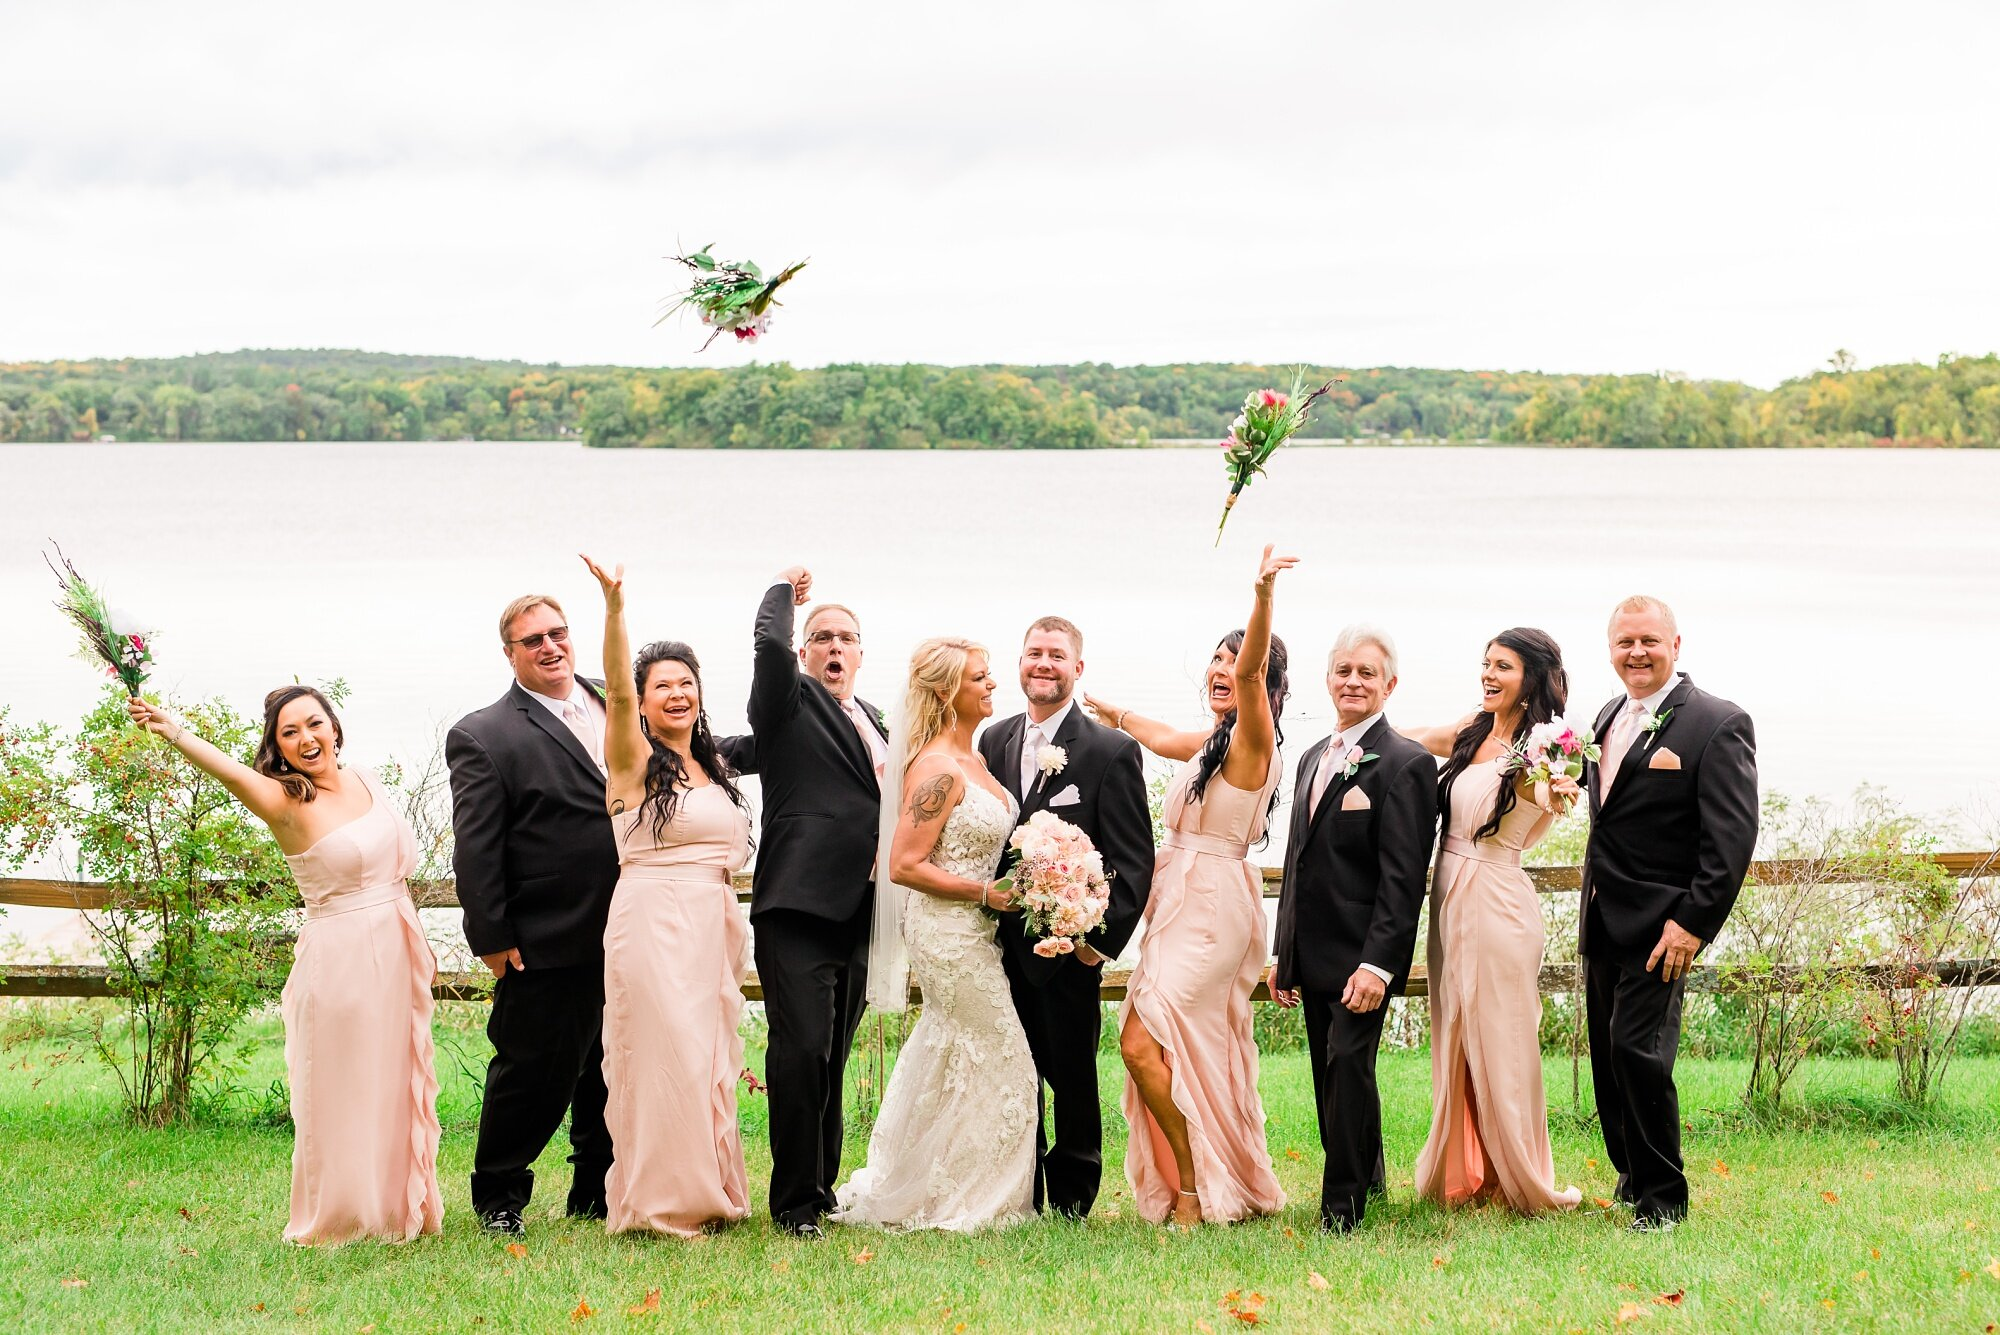 Amber Langerud Photography_Eagle Lake Rustic Styled Outdoor Wedding in Minnesota_6851.jpg